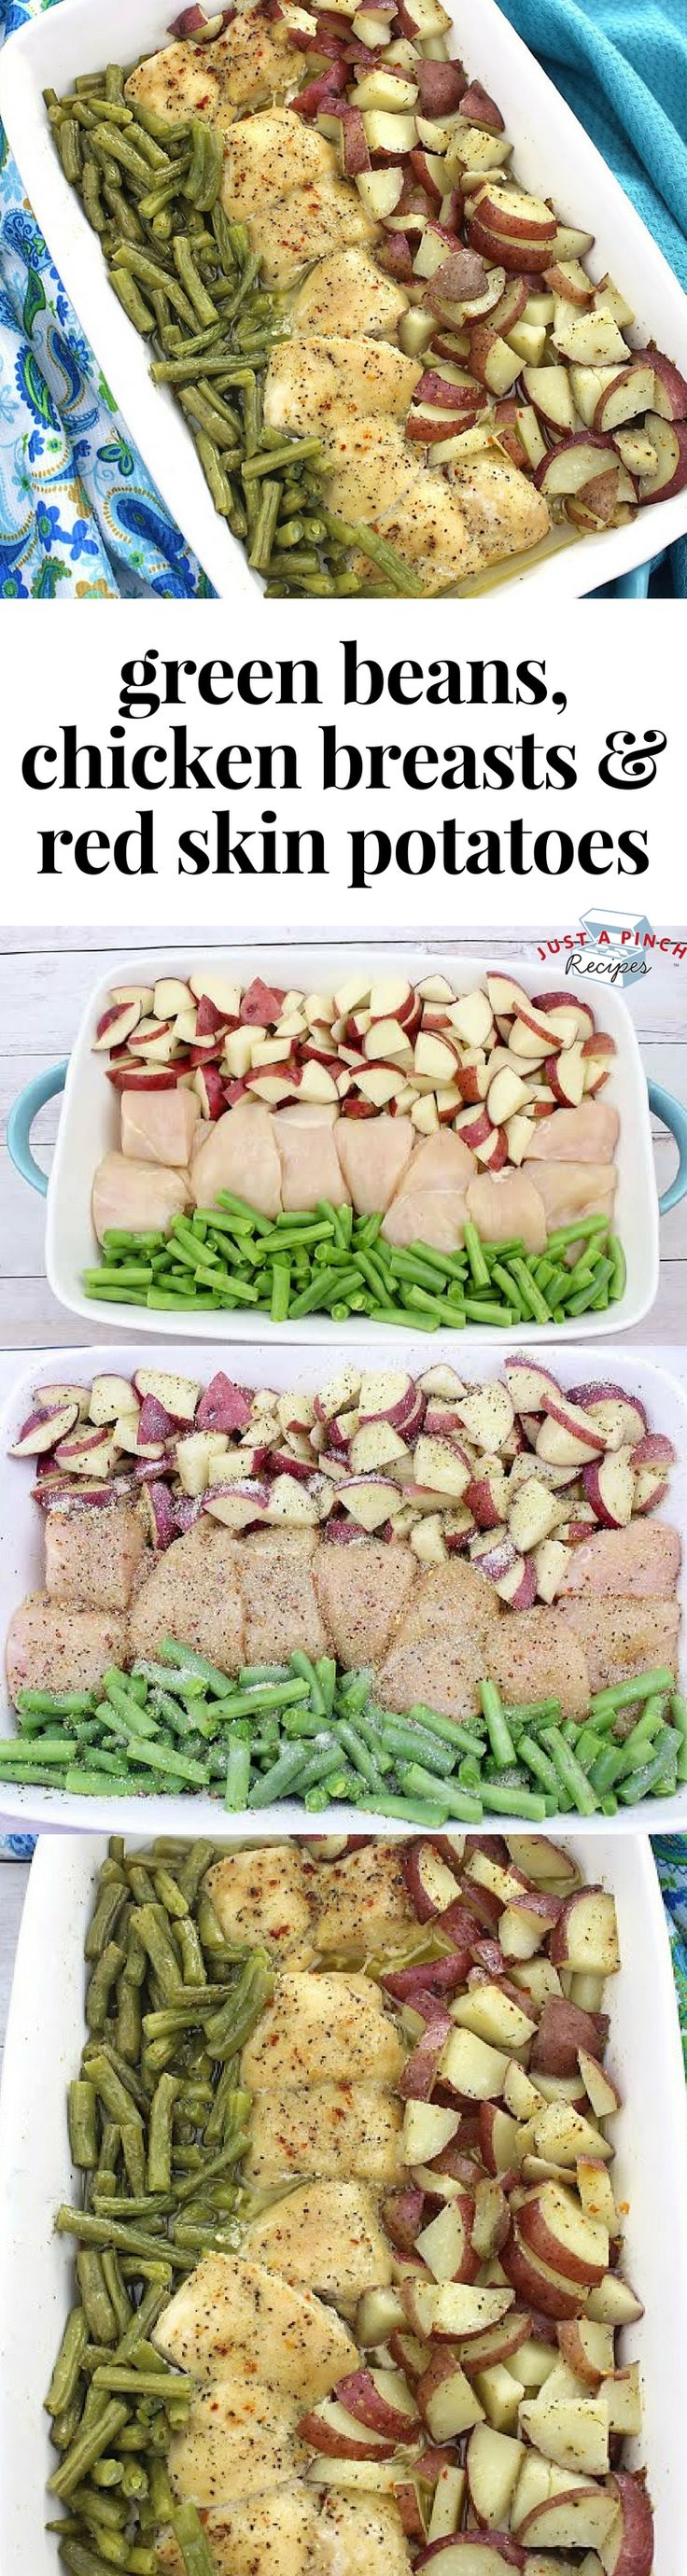 Easy dinner recipe alert! This sheet pan chicken, green bean and red skin potatoes recipe is an easy weeknight meal the entire family will love! #chickendinner #chickenrecipes #sheetpan #easyrecipe #easydinner #dinnerrecipes #dinnertime #familydinner